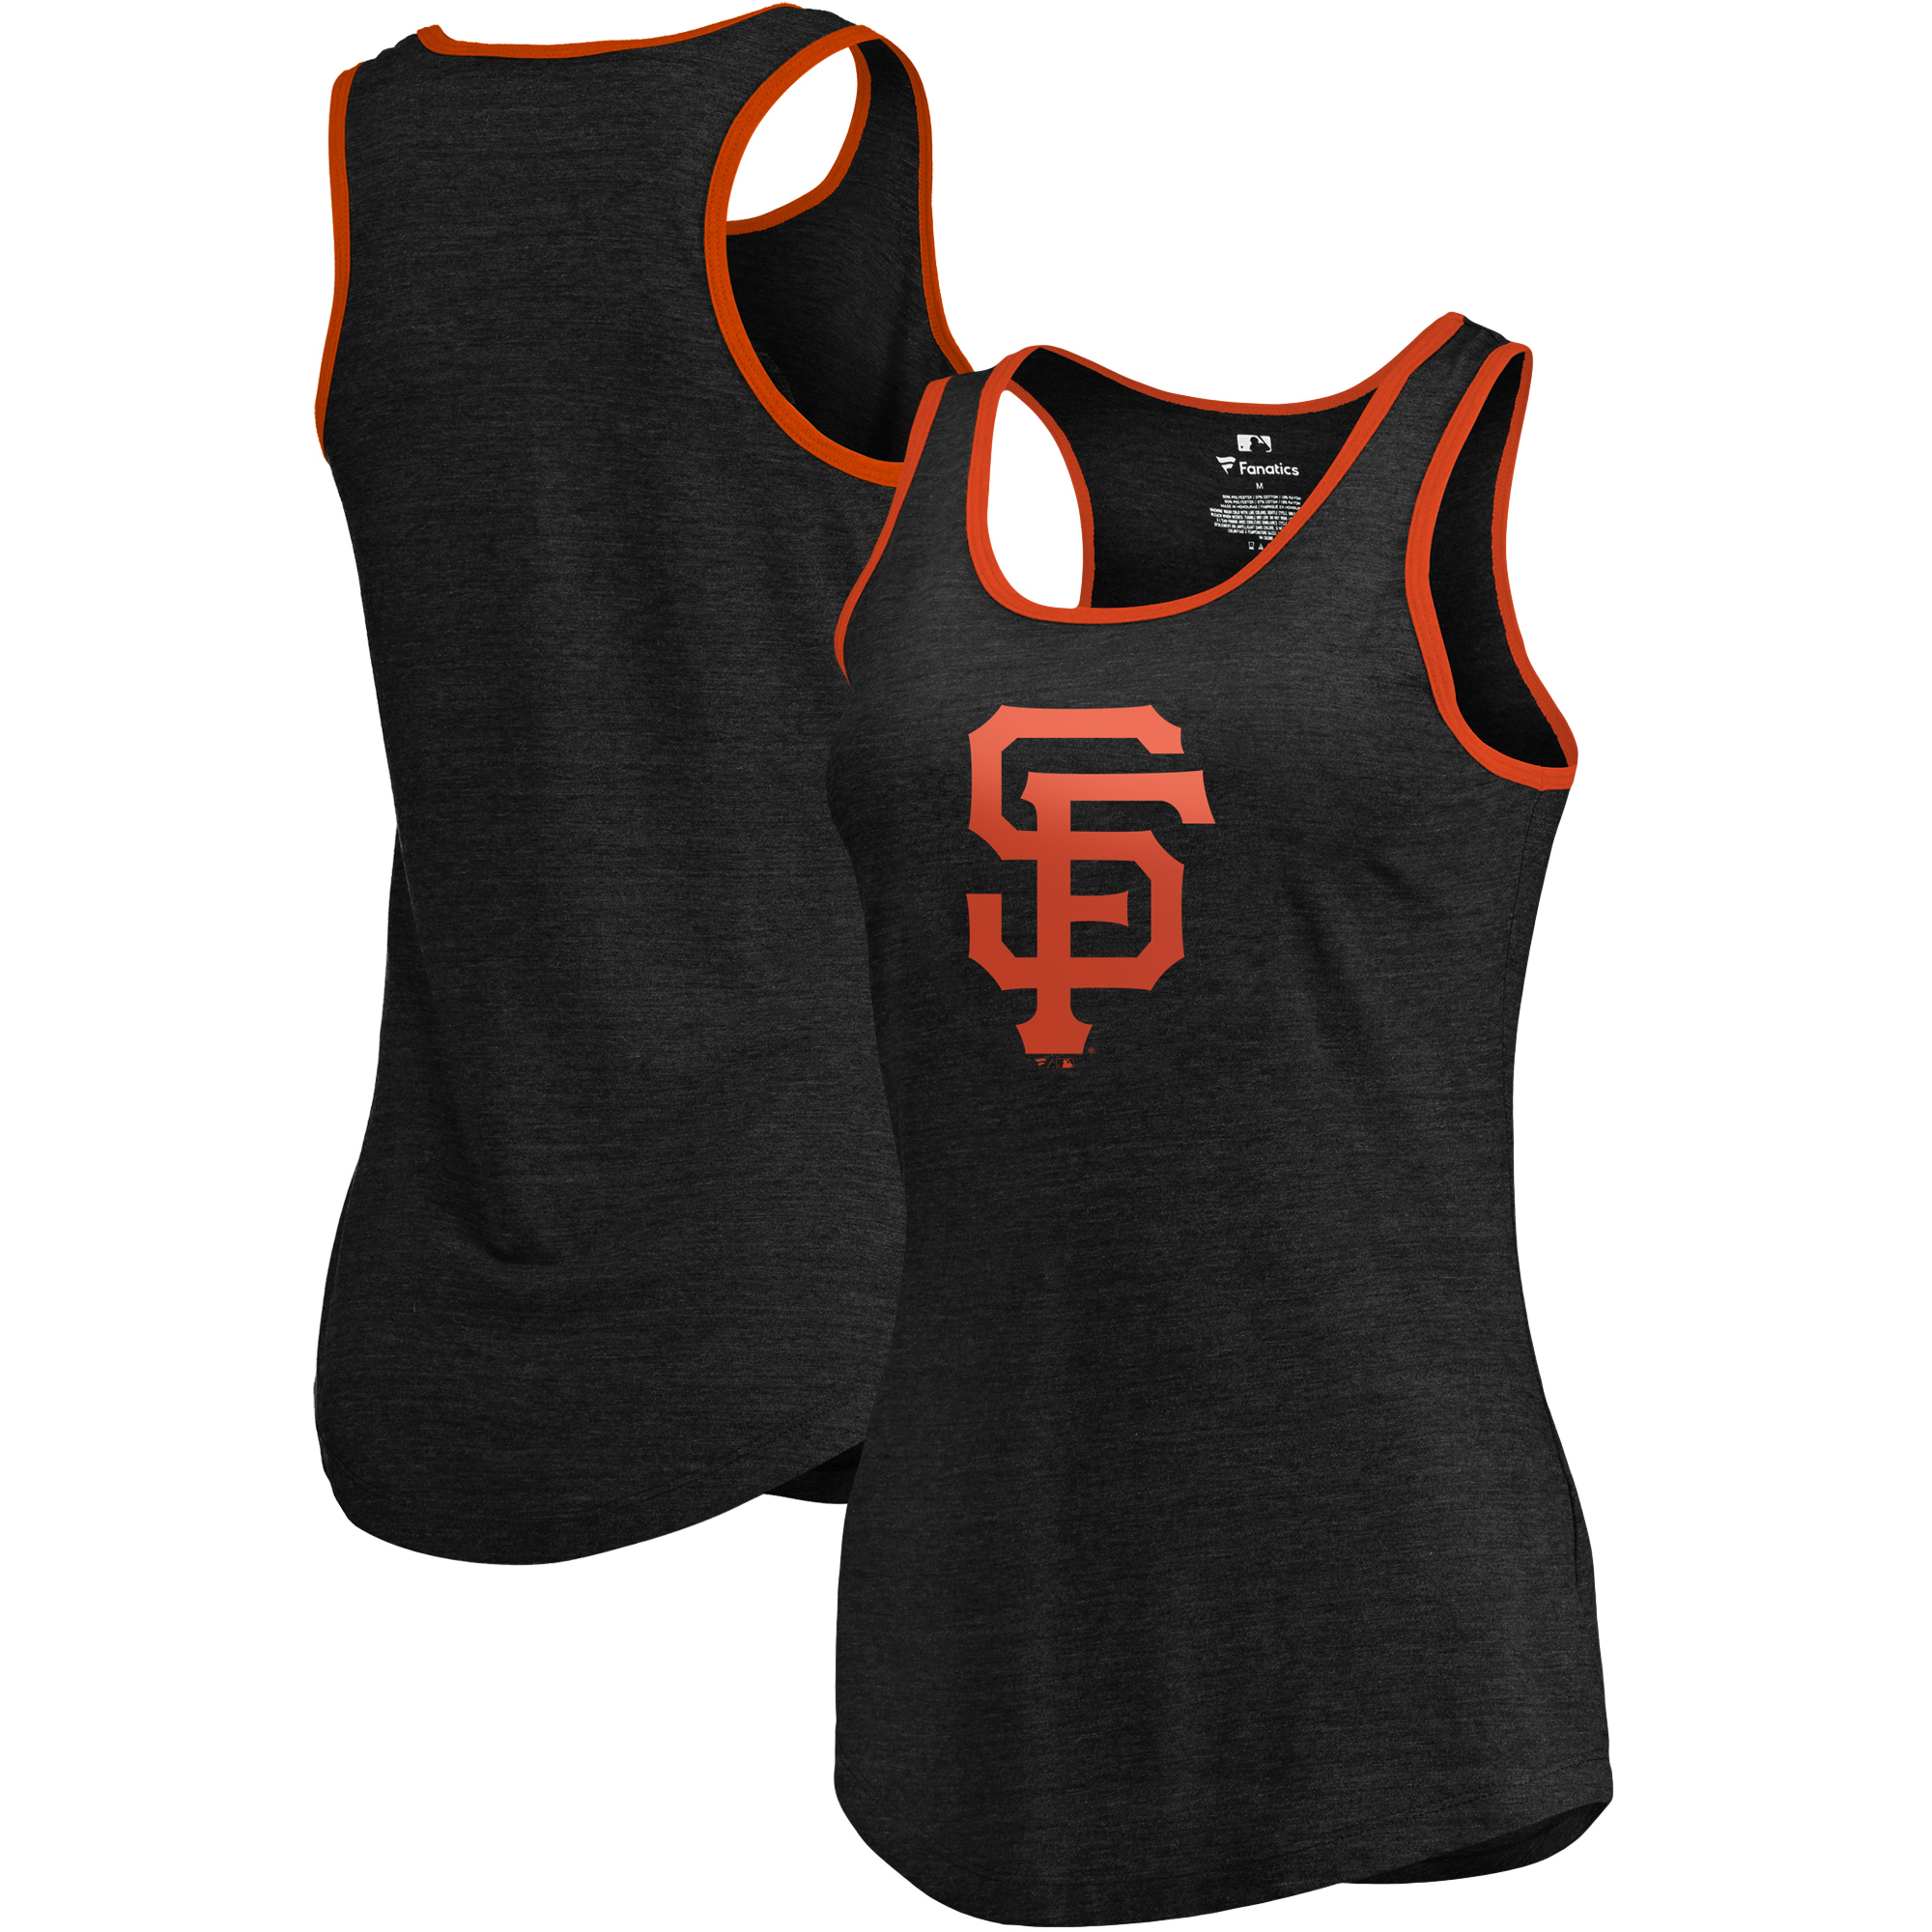 San Francisco Giants Fanatics Branded Women's Prime Ringer Tri-Blend Tank Top - Black/Orange